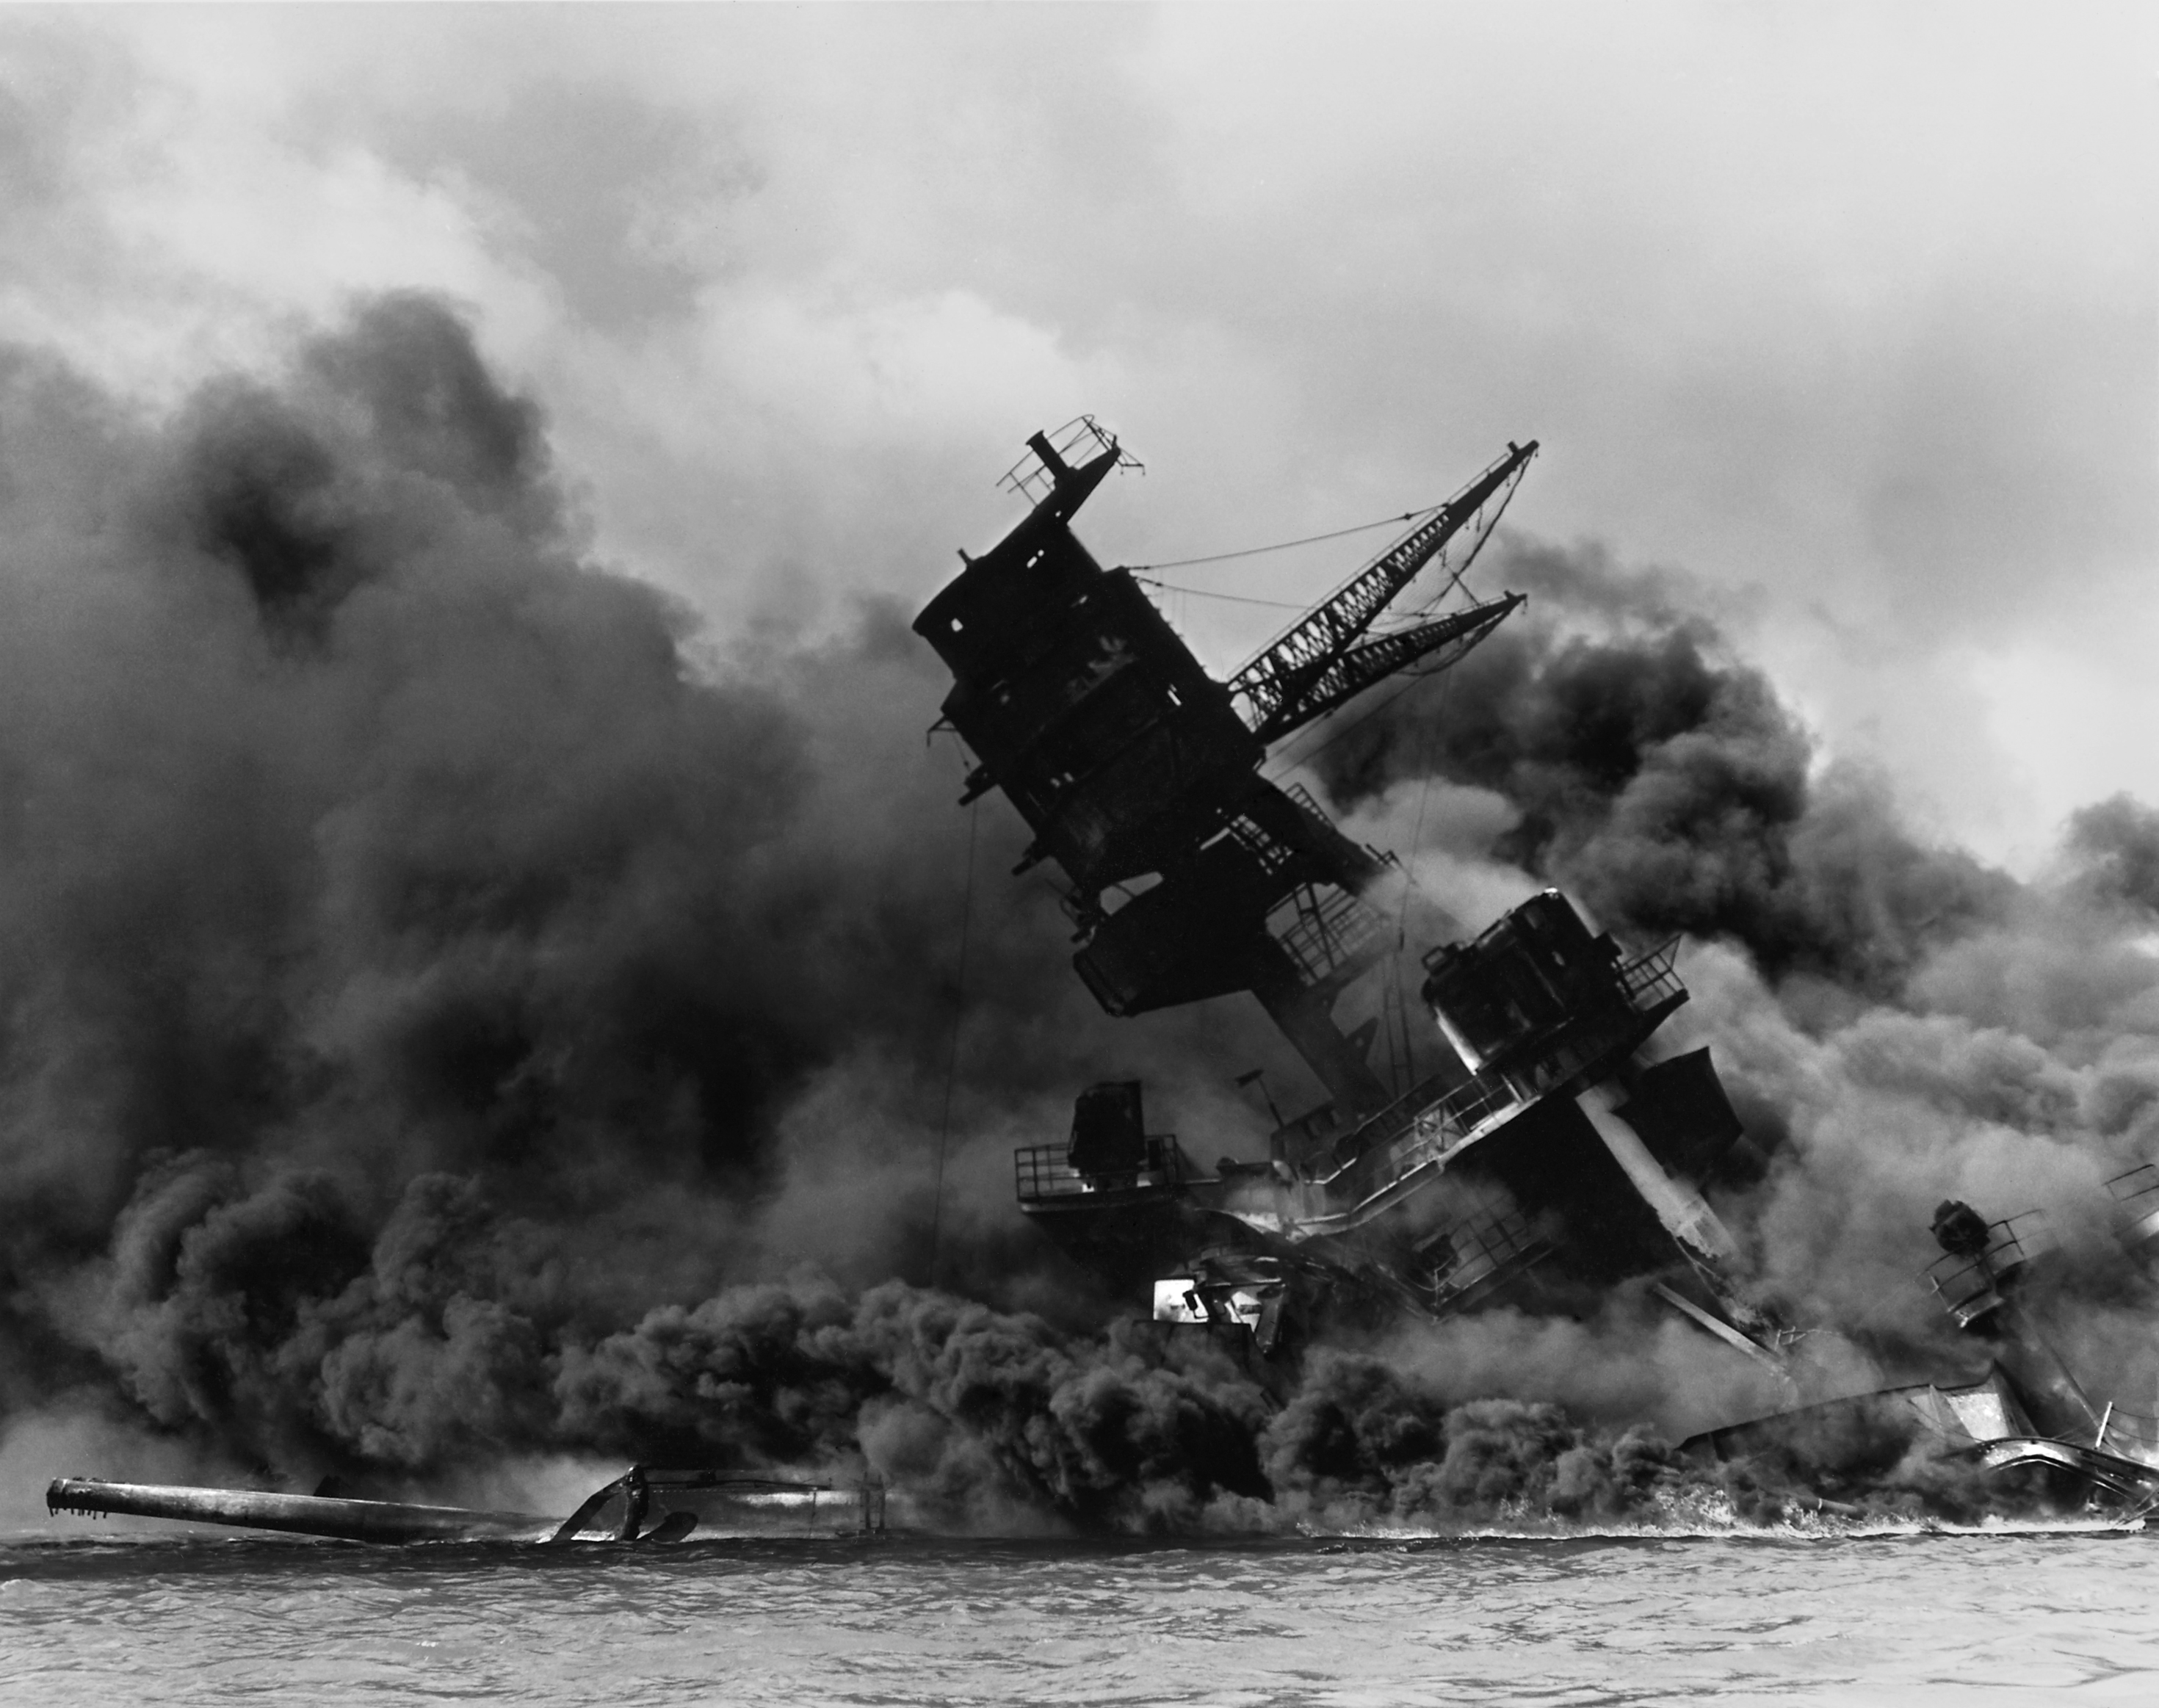 the-uss-arizona-bb-39-burning-after-the-japanese-attack-on-pea